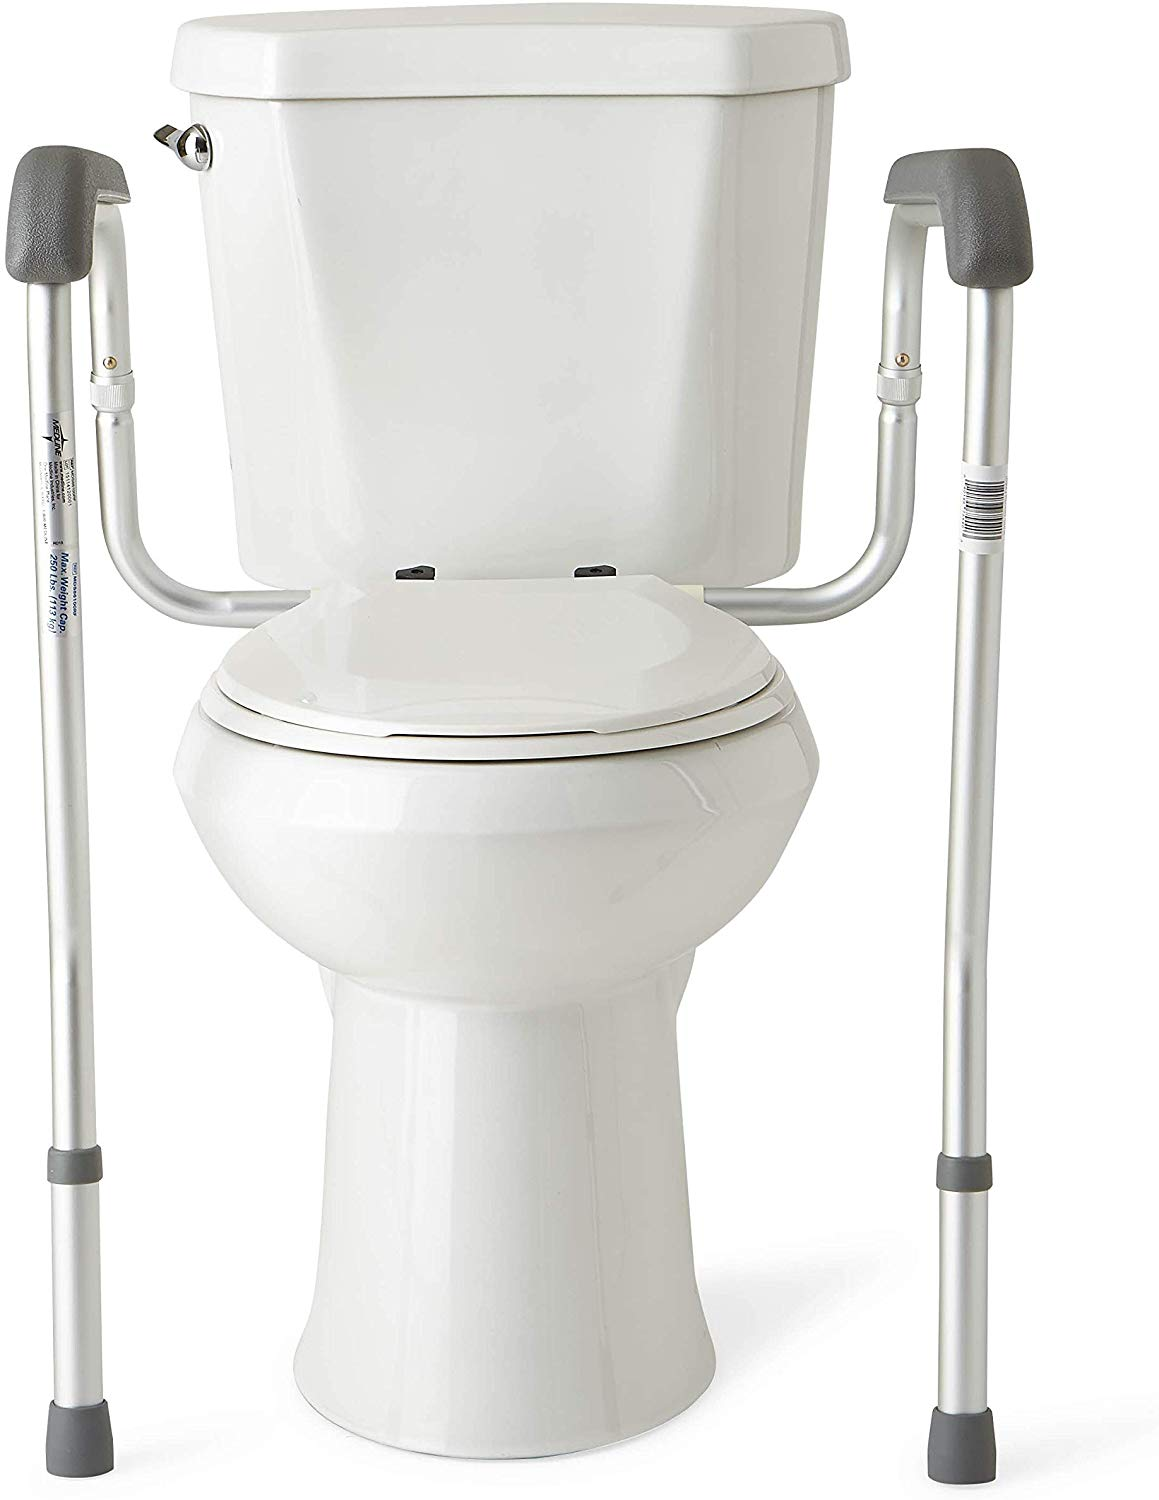 Review of Medline Toilet Safety Rails, Height Adjustable Legs